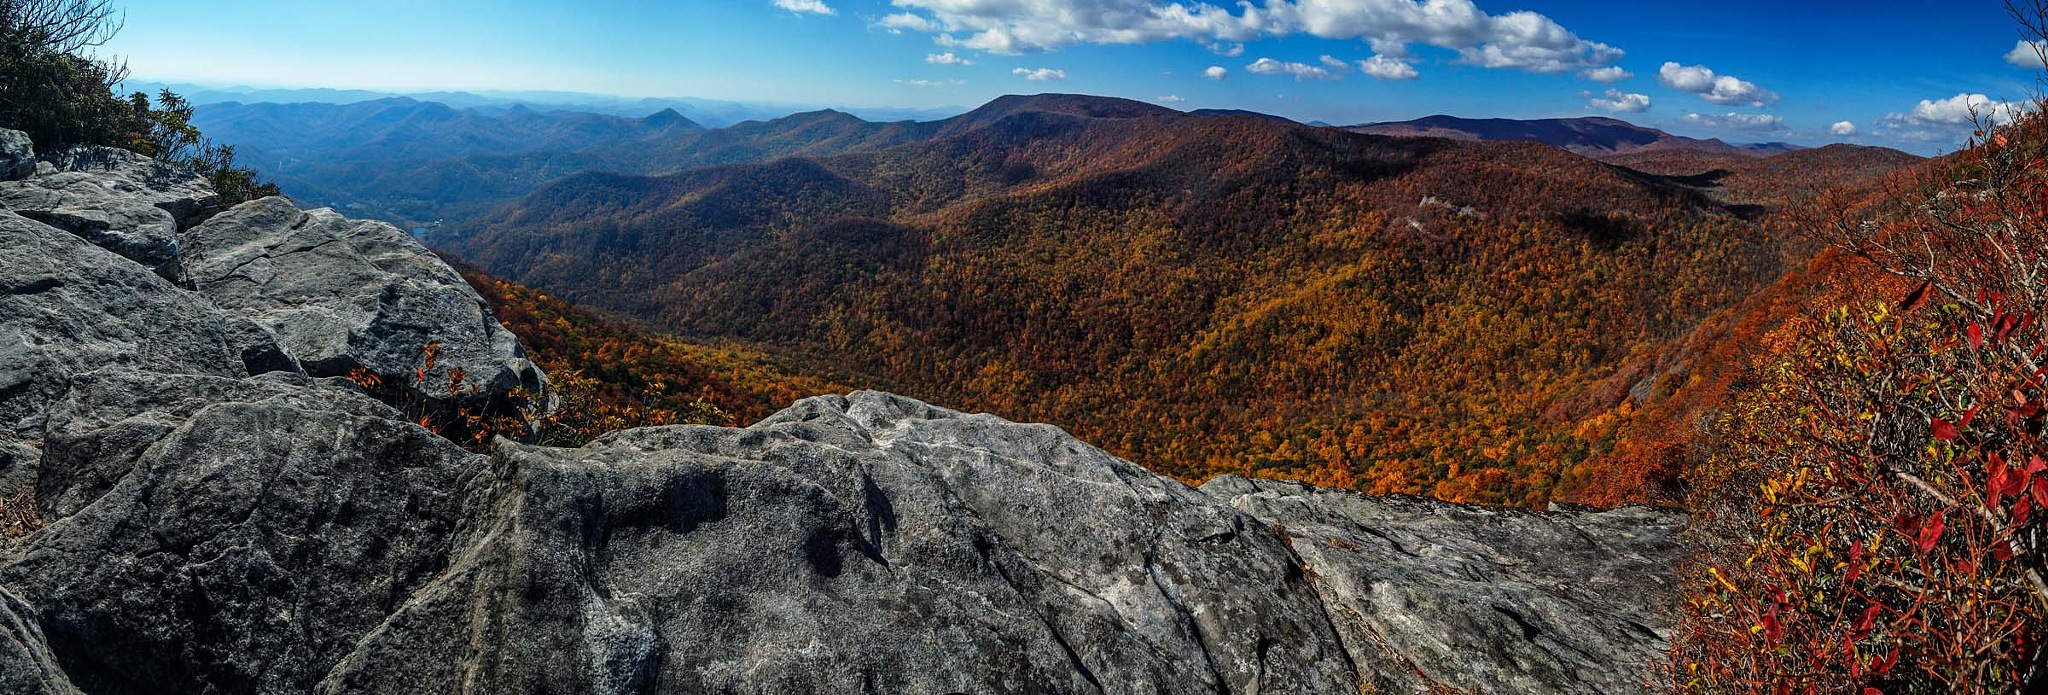 Panorama from Pickens Nose trail, Otto, NC by revpaulvet